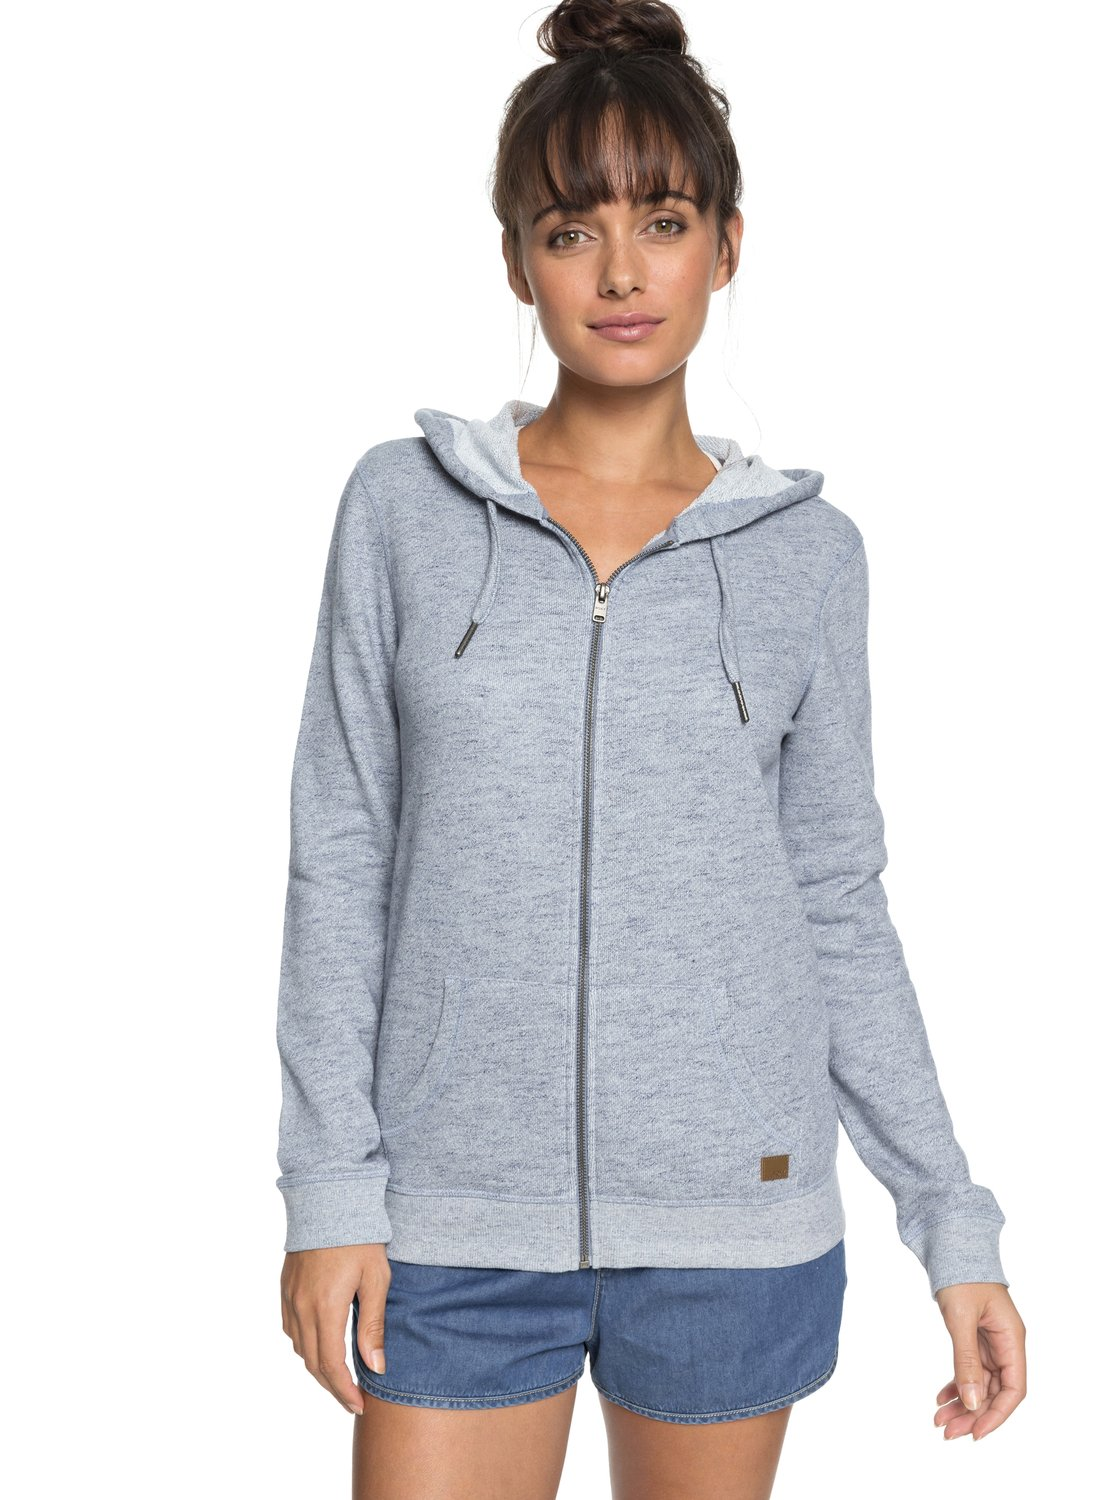 3678c79fbdcc8 Details about Roxy Womens Trippin Zip Up Hoodie - Dress Blues Heather